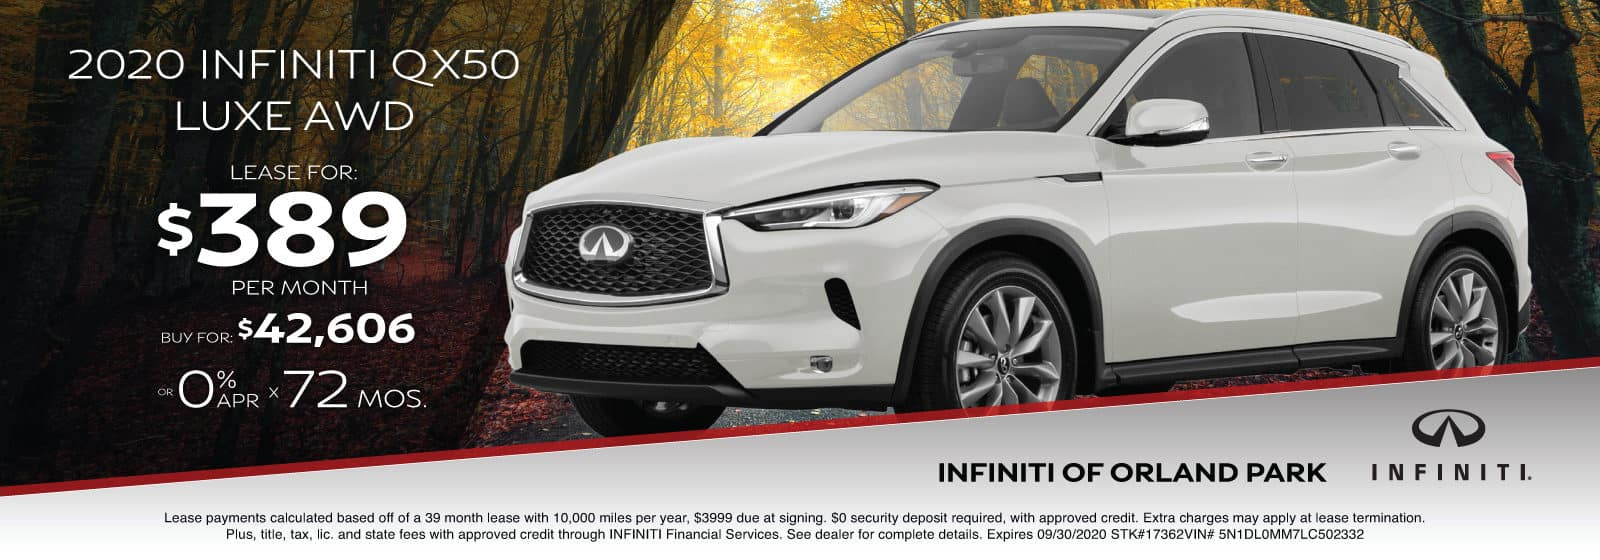 Lease a new 2020 QX50 for $389/month